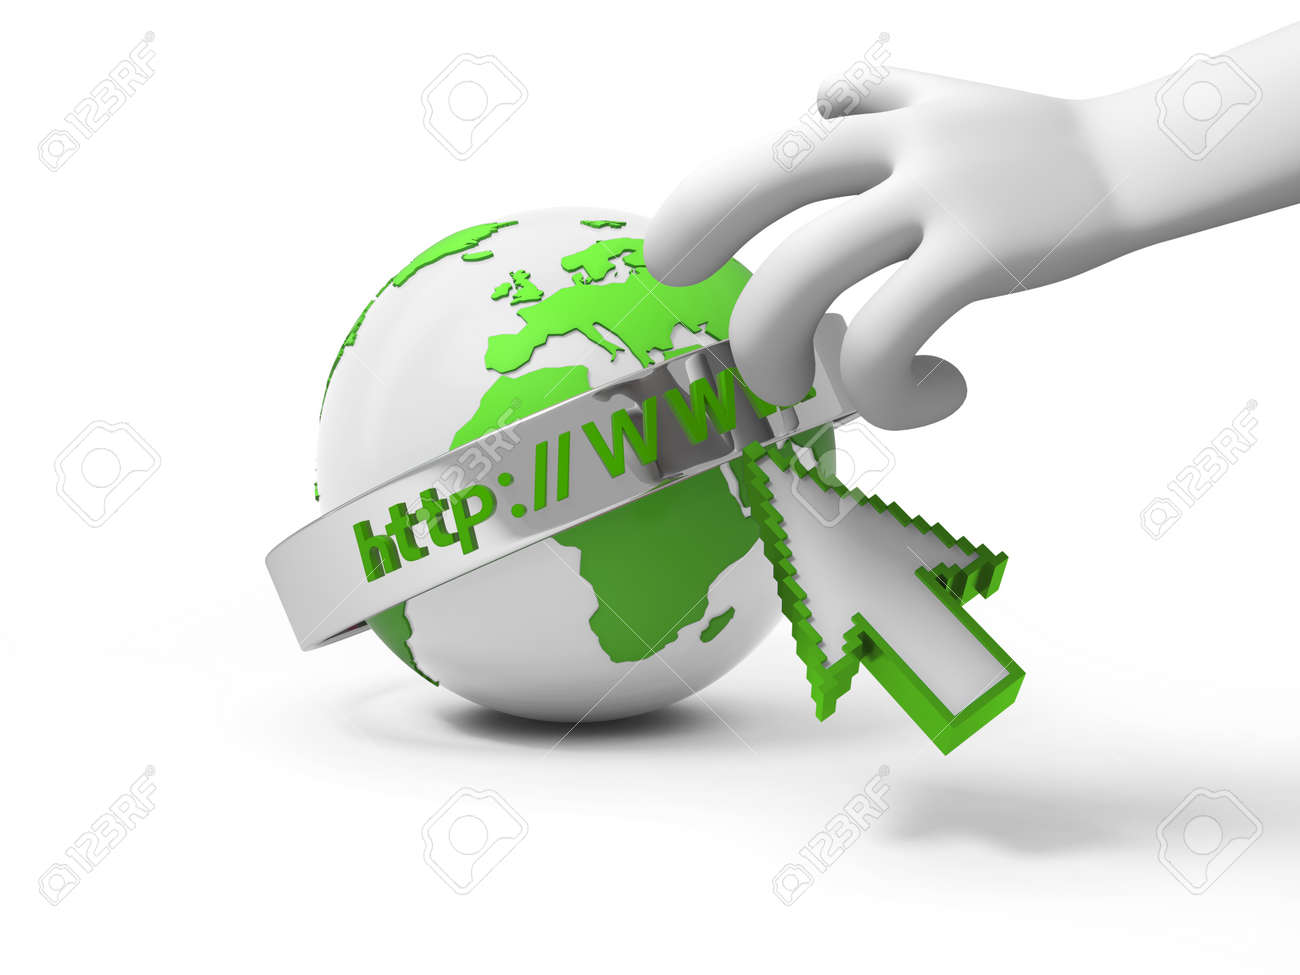 A 3d hand reaching the internet model Stock Photo - 18910141